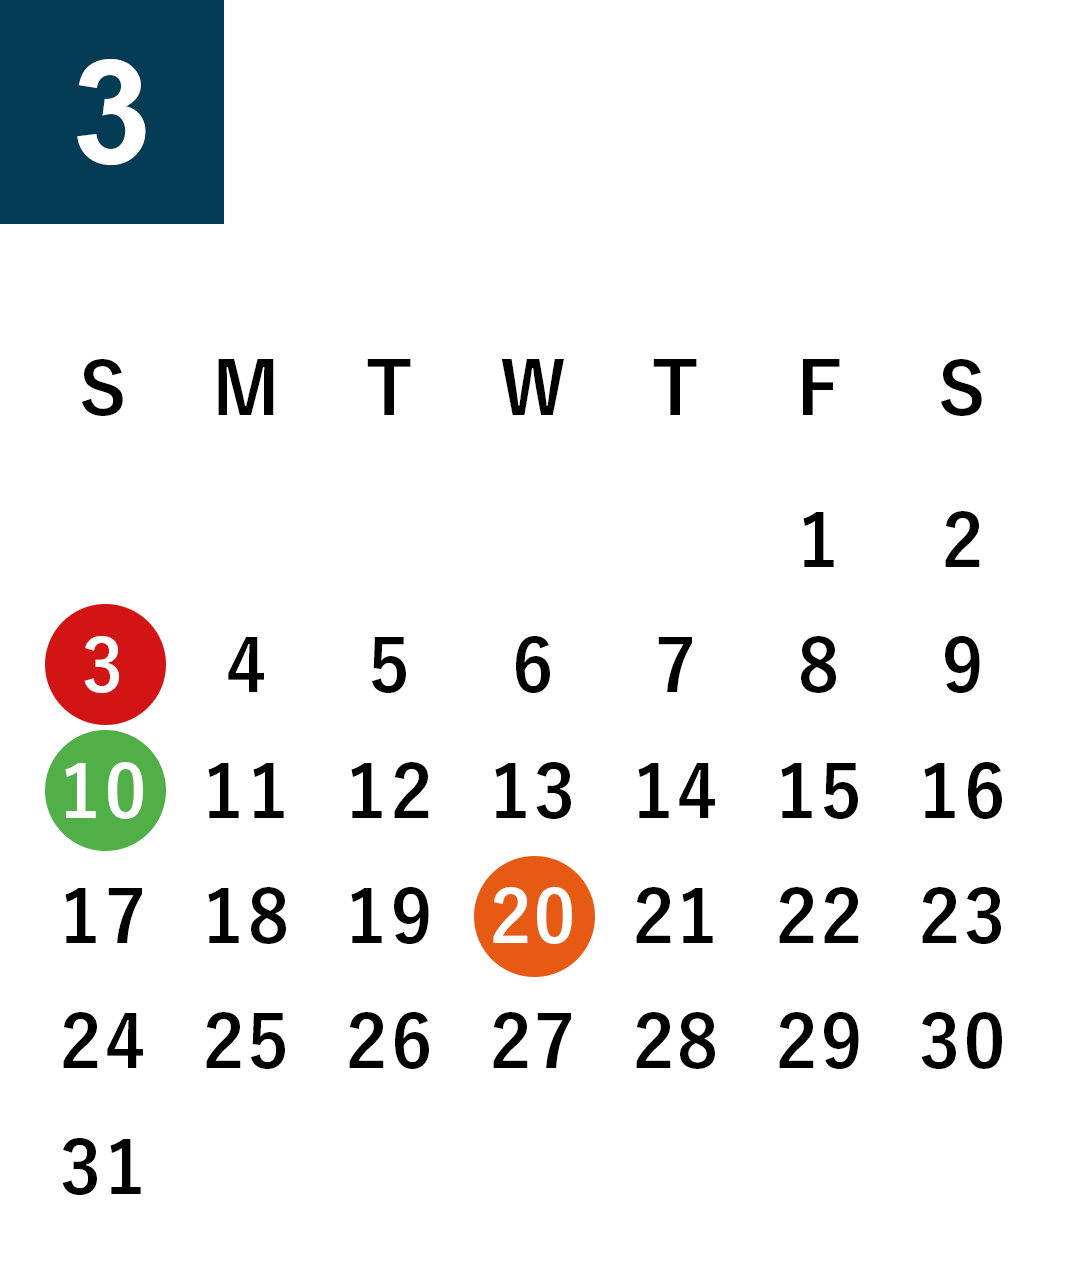 March 2019 Business day calendar